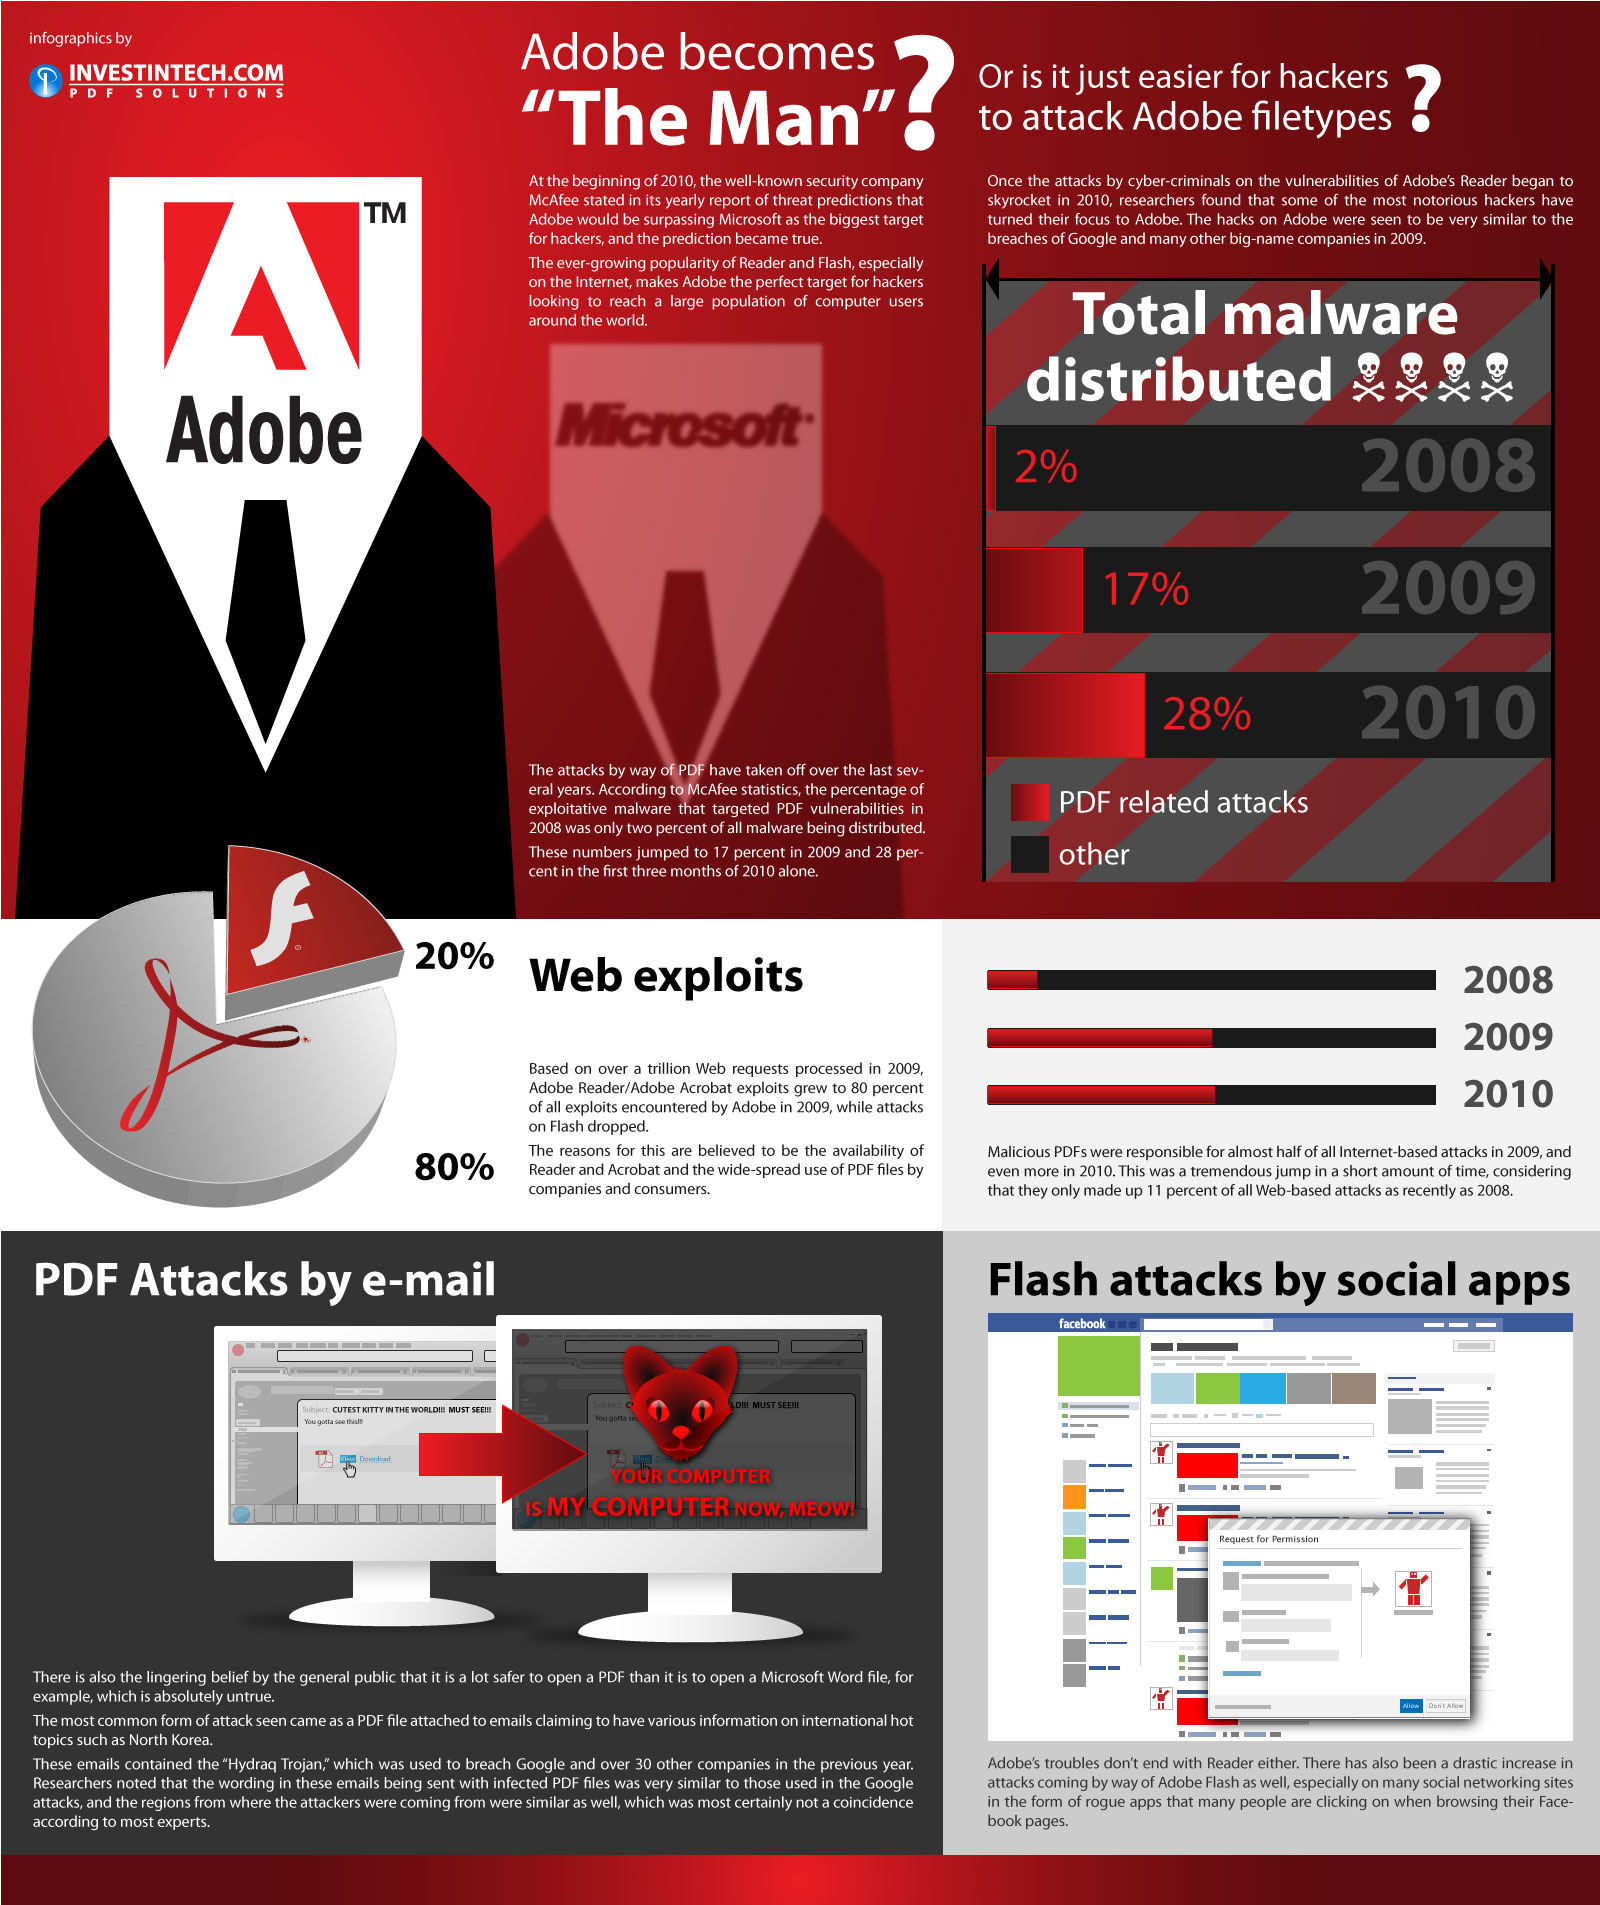 Hackers vs. Adobe: How File Types Cripple Security [Infographic]